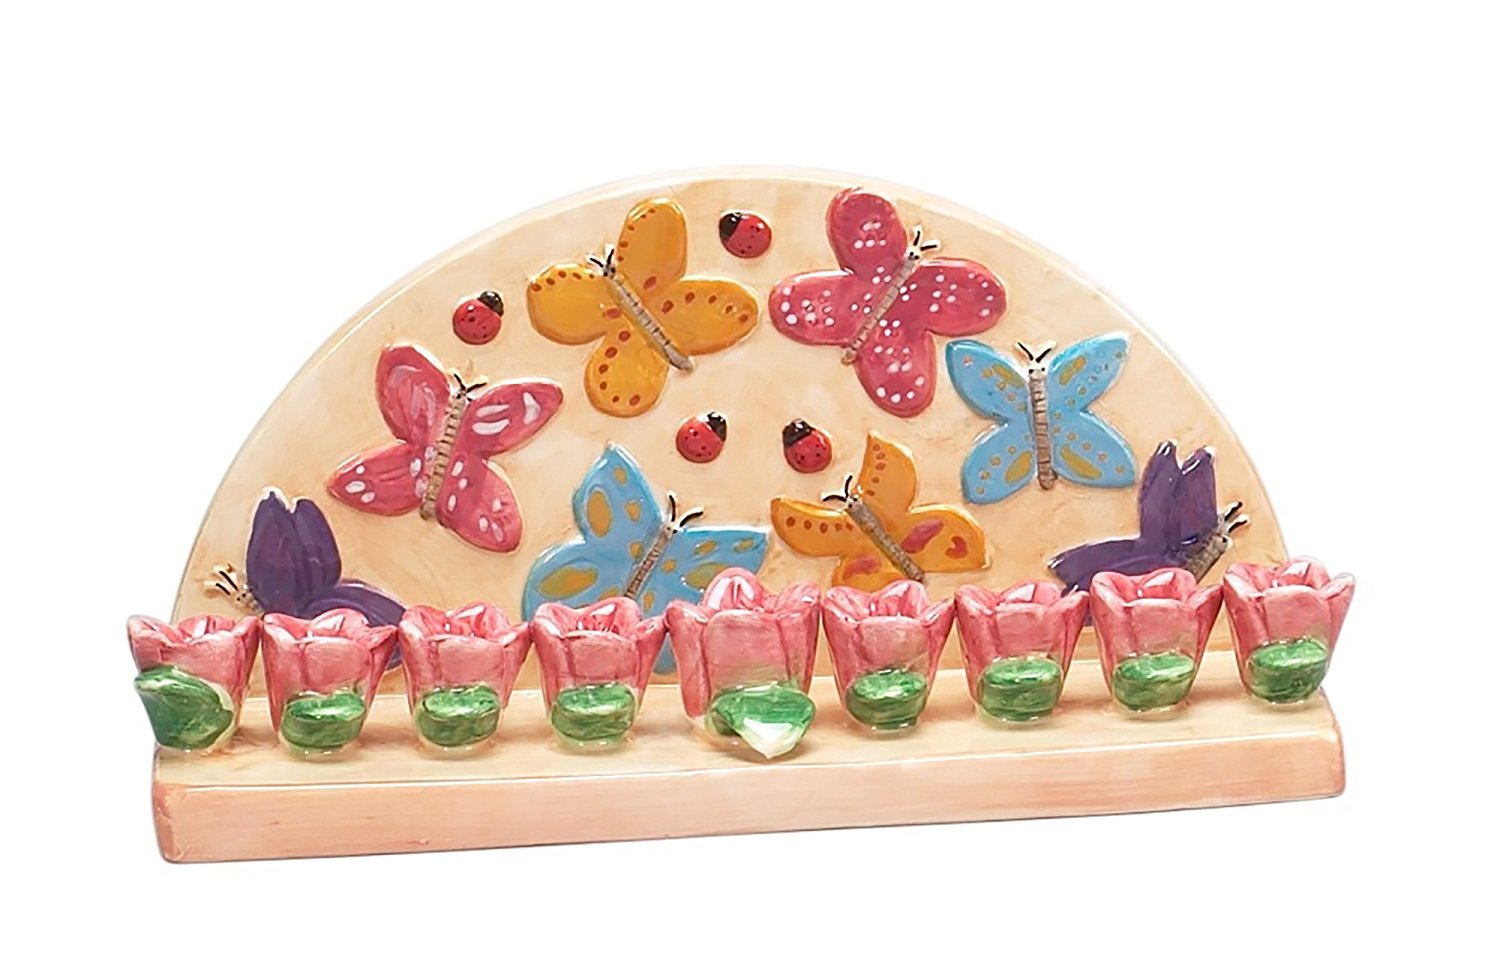 Hanukkah Menorah for Candles Butterfly for Chanukah Party Ceramic ISRAEL GIFT